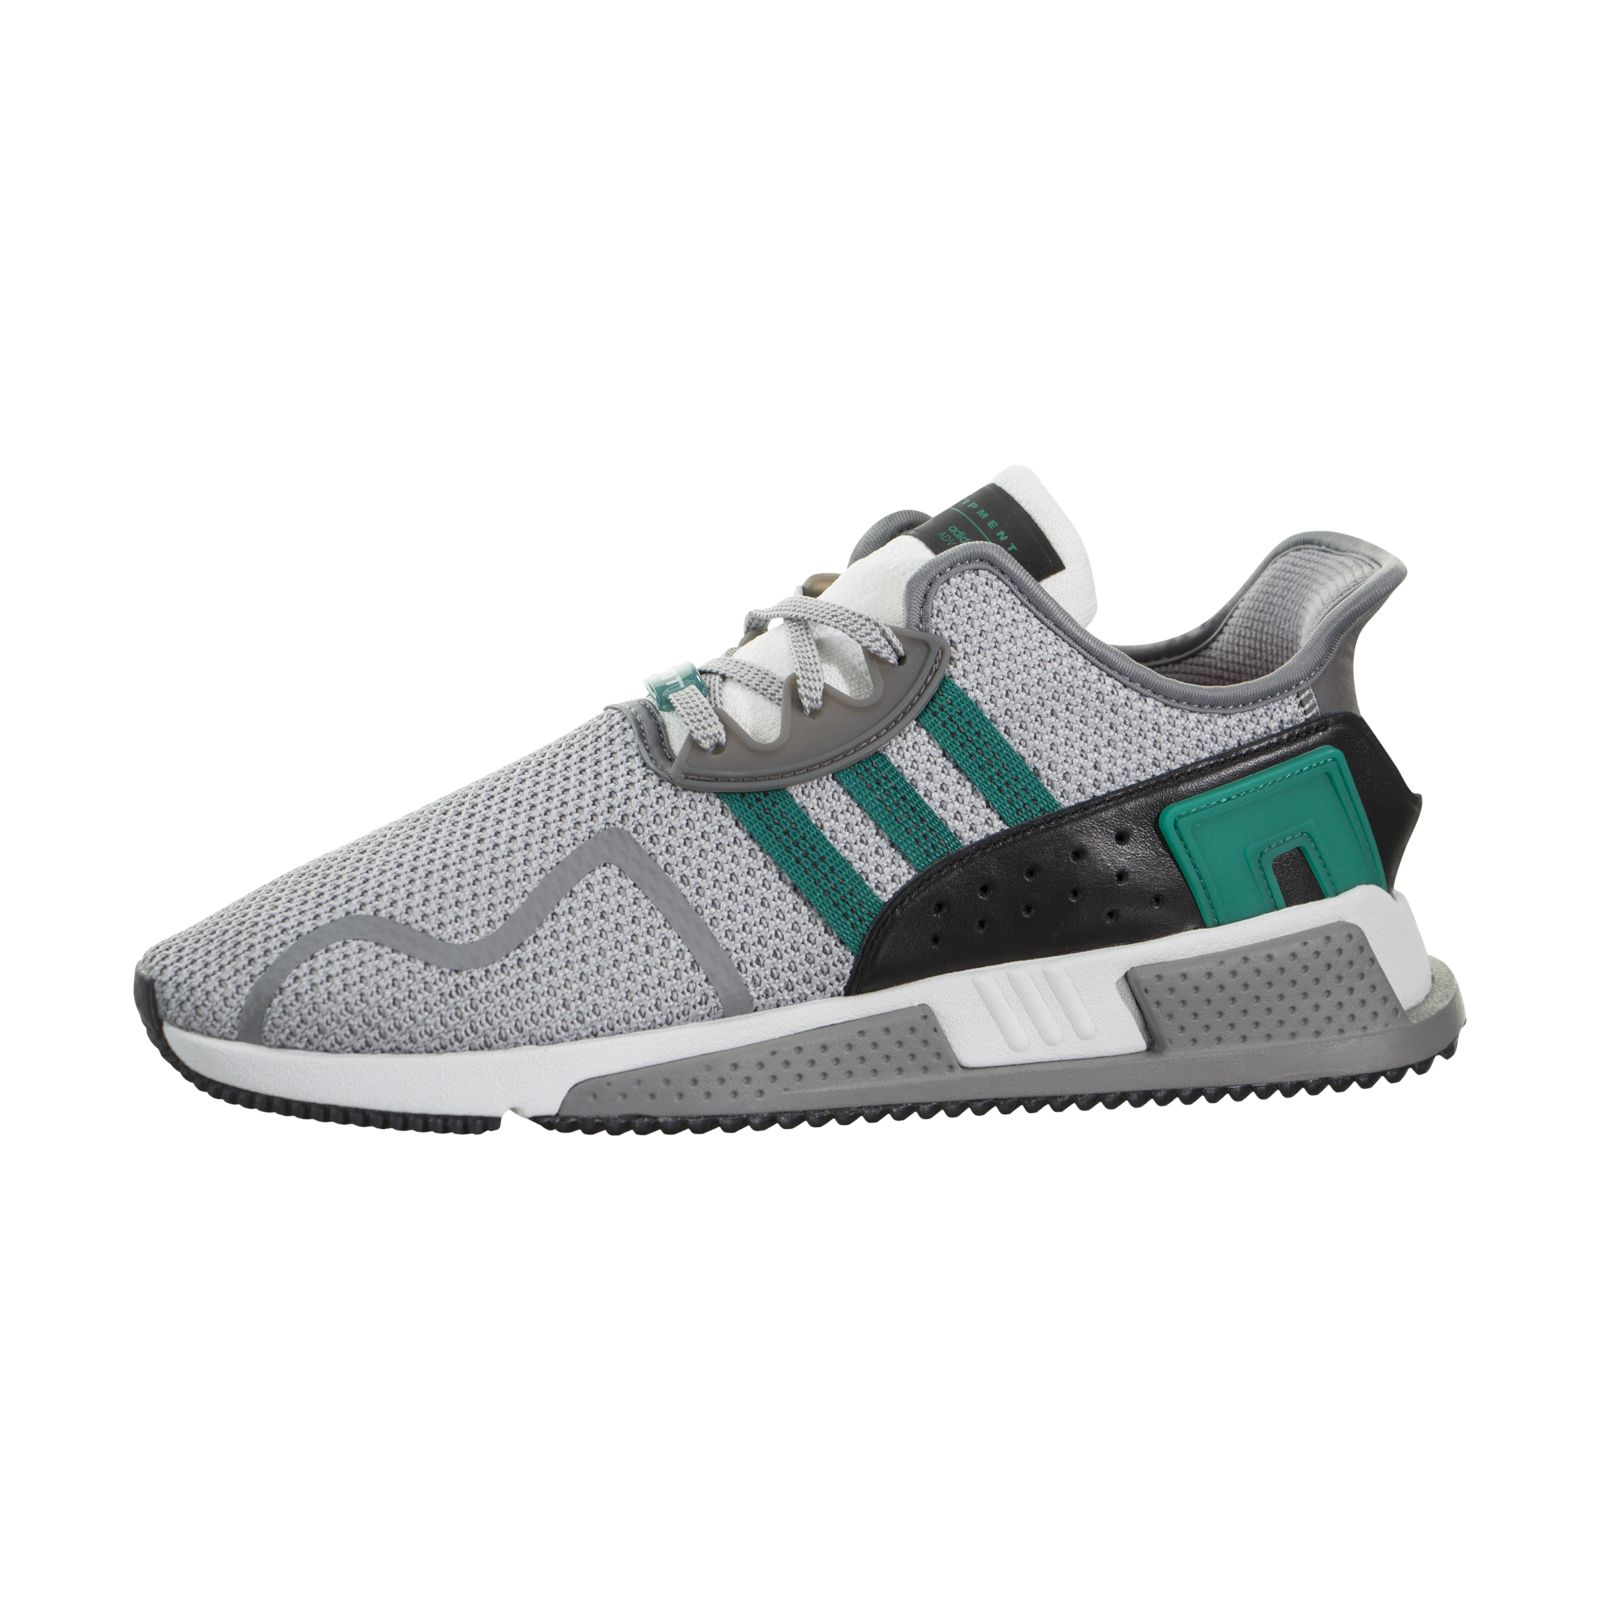 sports shoes ac6bb 2019f Image is loading Adidas-EQT-Cushion-ADV-ah2232